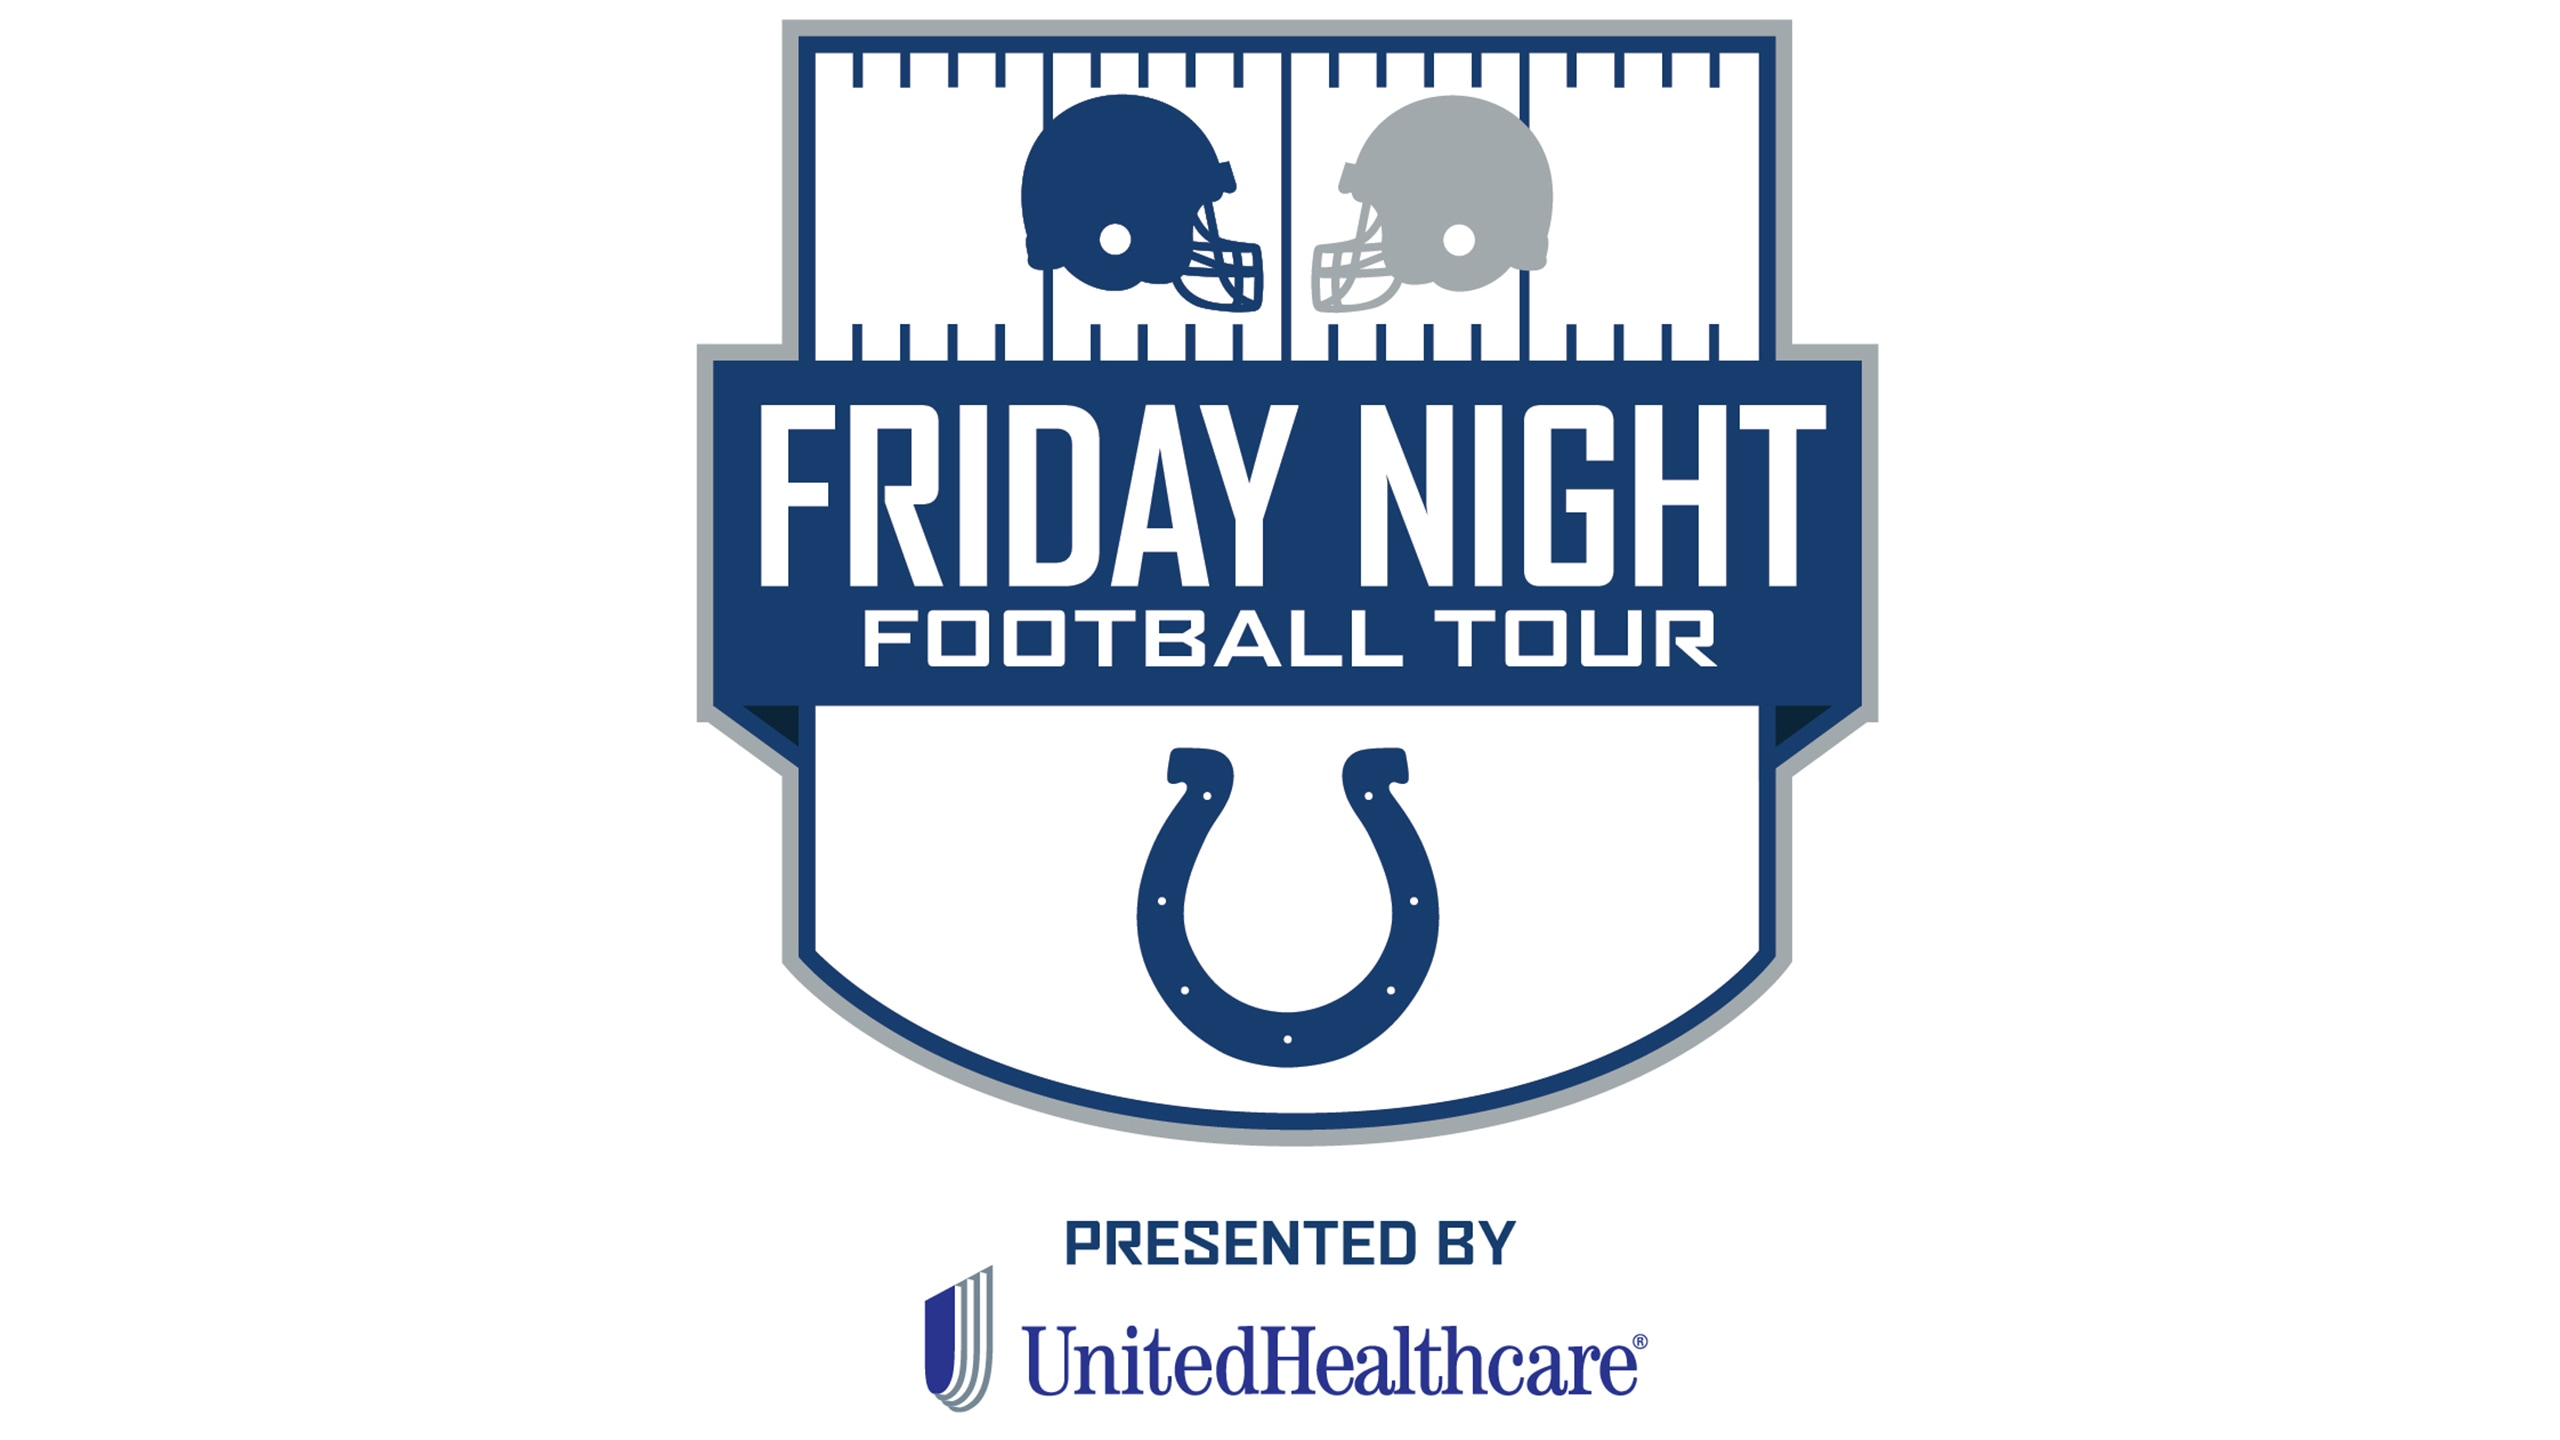 Friday Night Football Tour